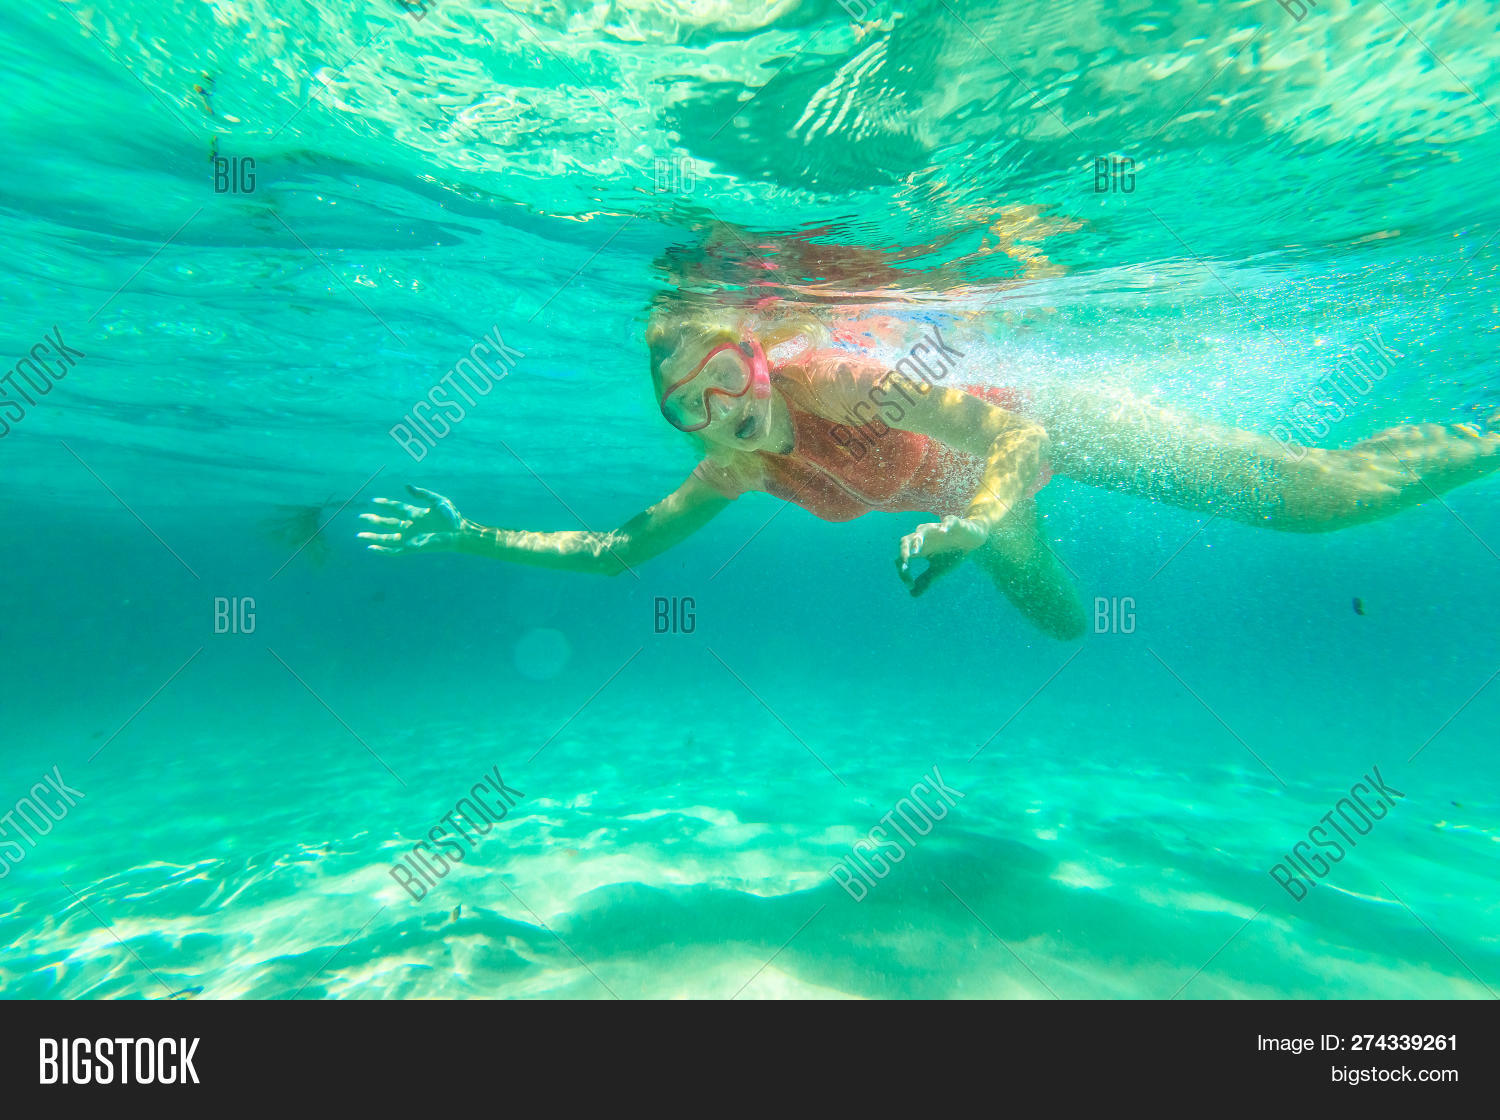 Young Woman Snorkeling Image & Photo (Free Trial) | Bigstock